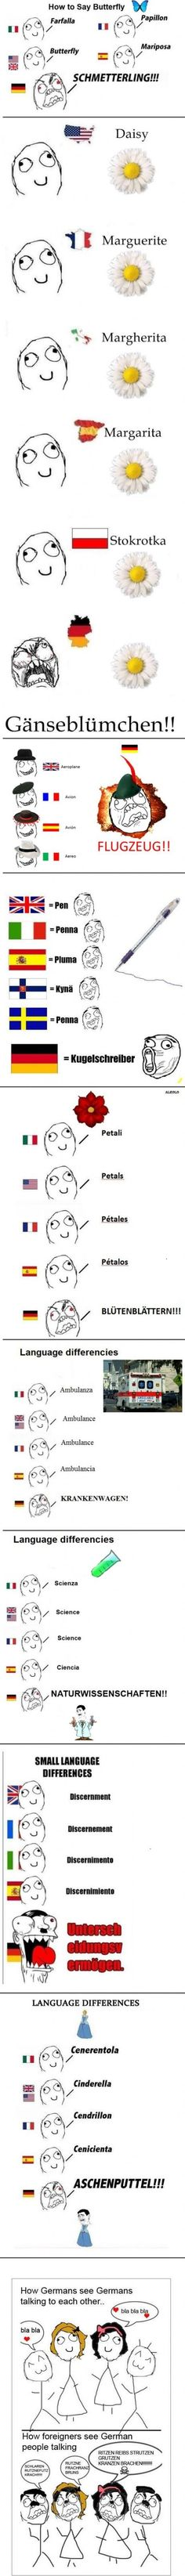 the awful german language - Reasons Why People Hate Their Jobs